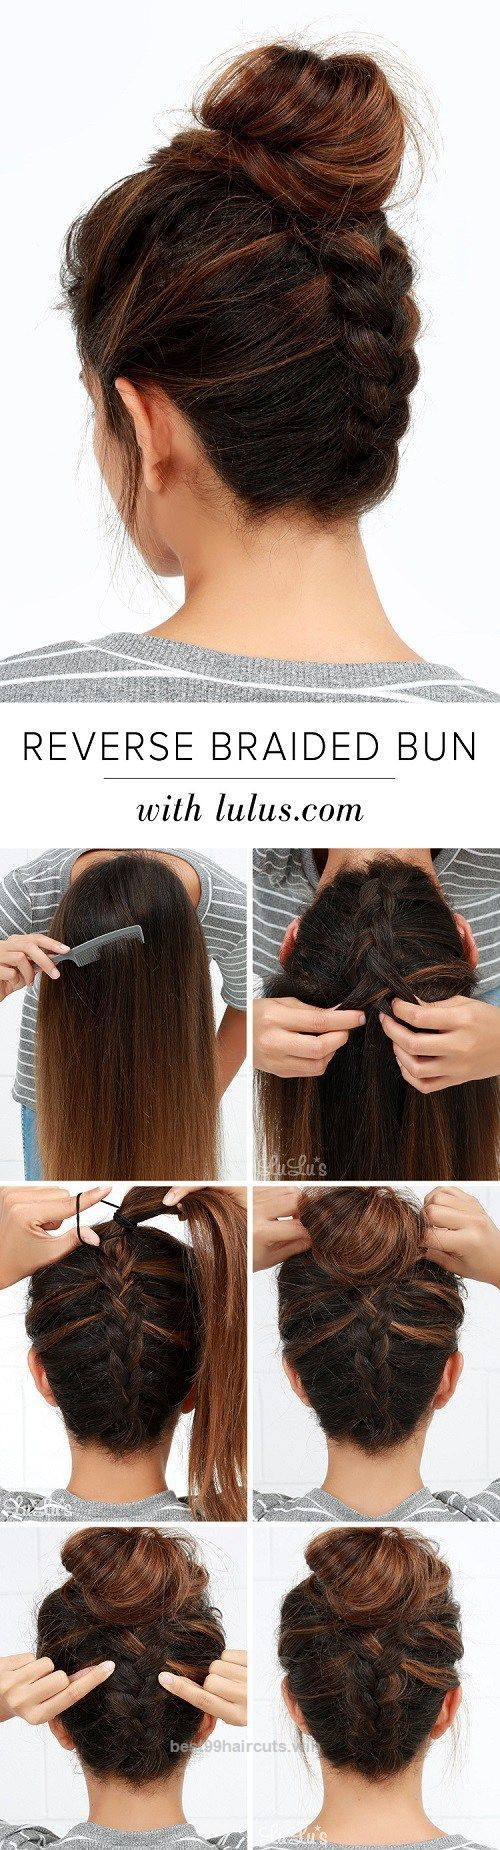 Great Upside Down Braid And Bun Tutorial. Hair ideas. A tutorial you can try on yourself. Difficult but beautiful.  The post  Upside Down Braid And Bun Tutorial. Hair ideas. A tutor ..